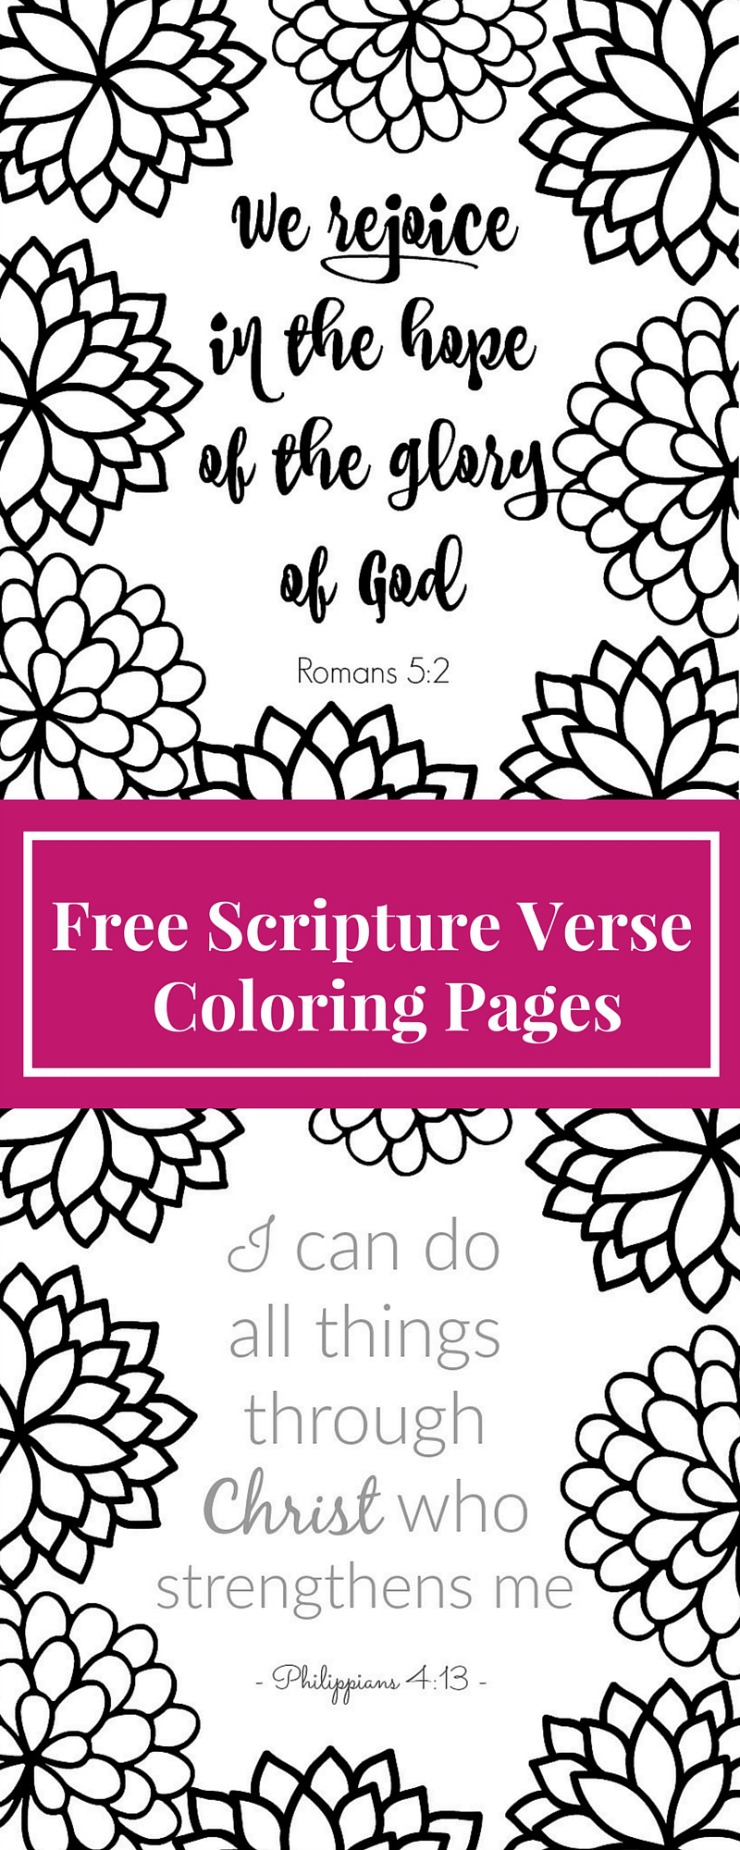 I just got into coloring pages again as a grown up! These Bible verse coloring page printables are inspirational, fun & relaxing to color. This blog has tons of free printable adult coloring pages with Christian themes.